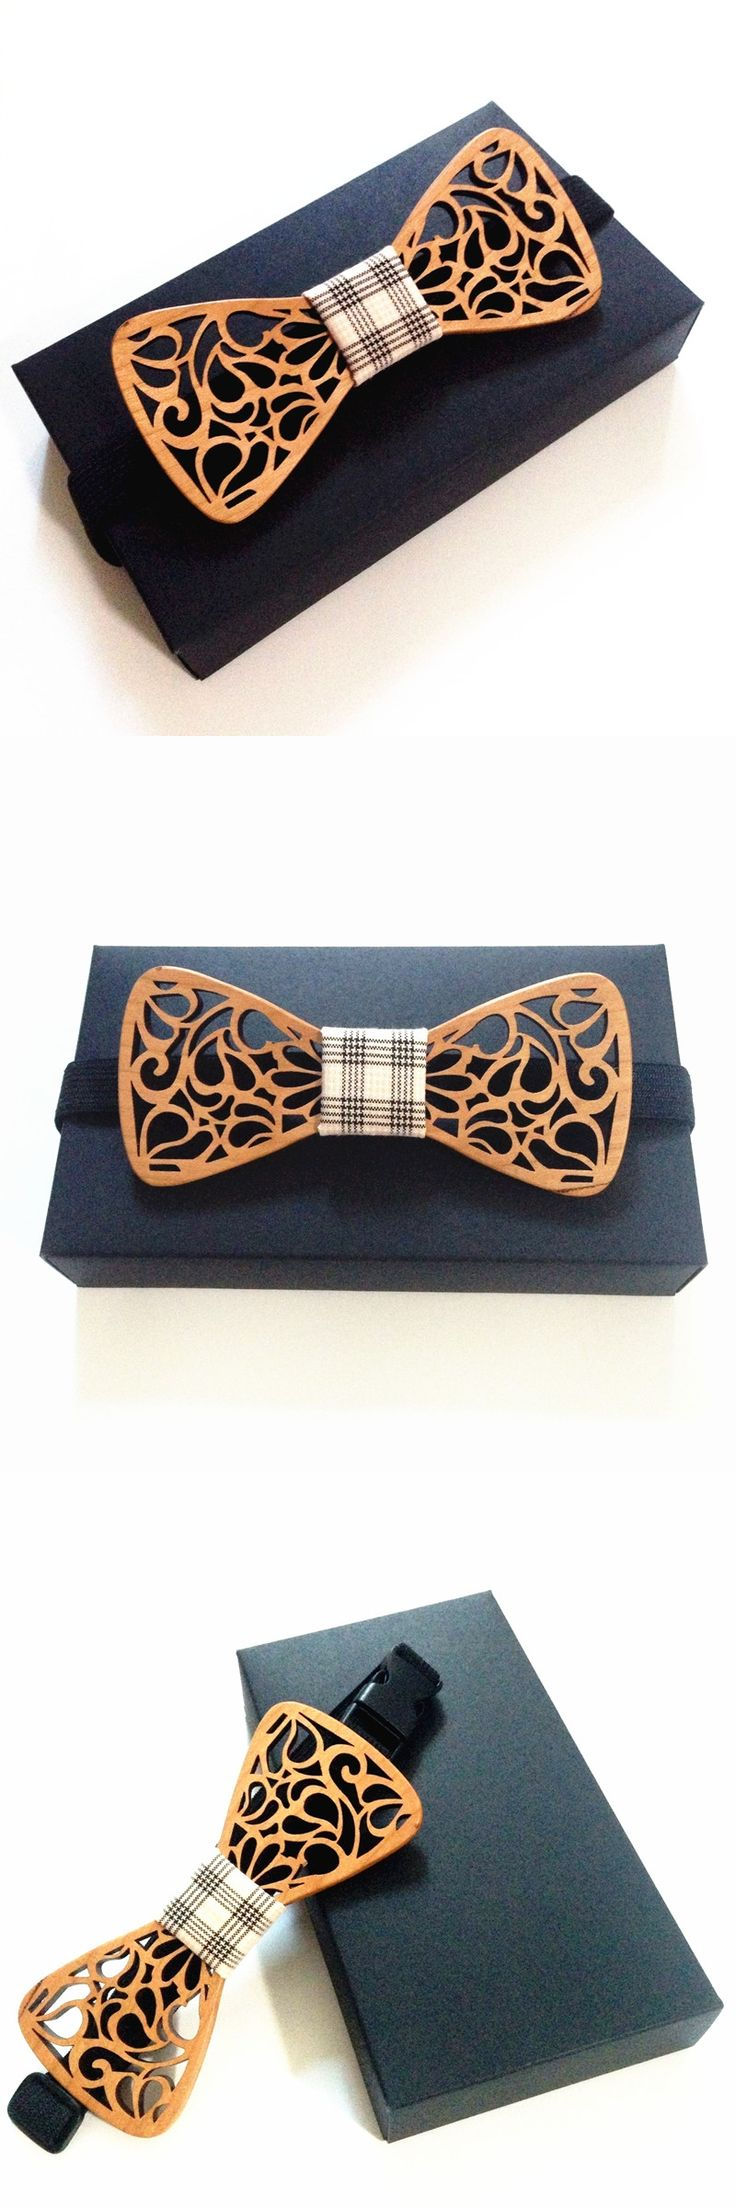 men's tie Wedding Bow Tie Wooden Tuxedo Suit Business Necktie Fashion Novelty Gifts box game of throne juego de tronos CR020